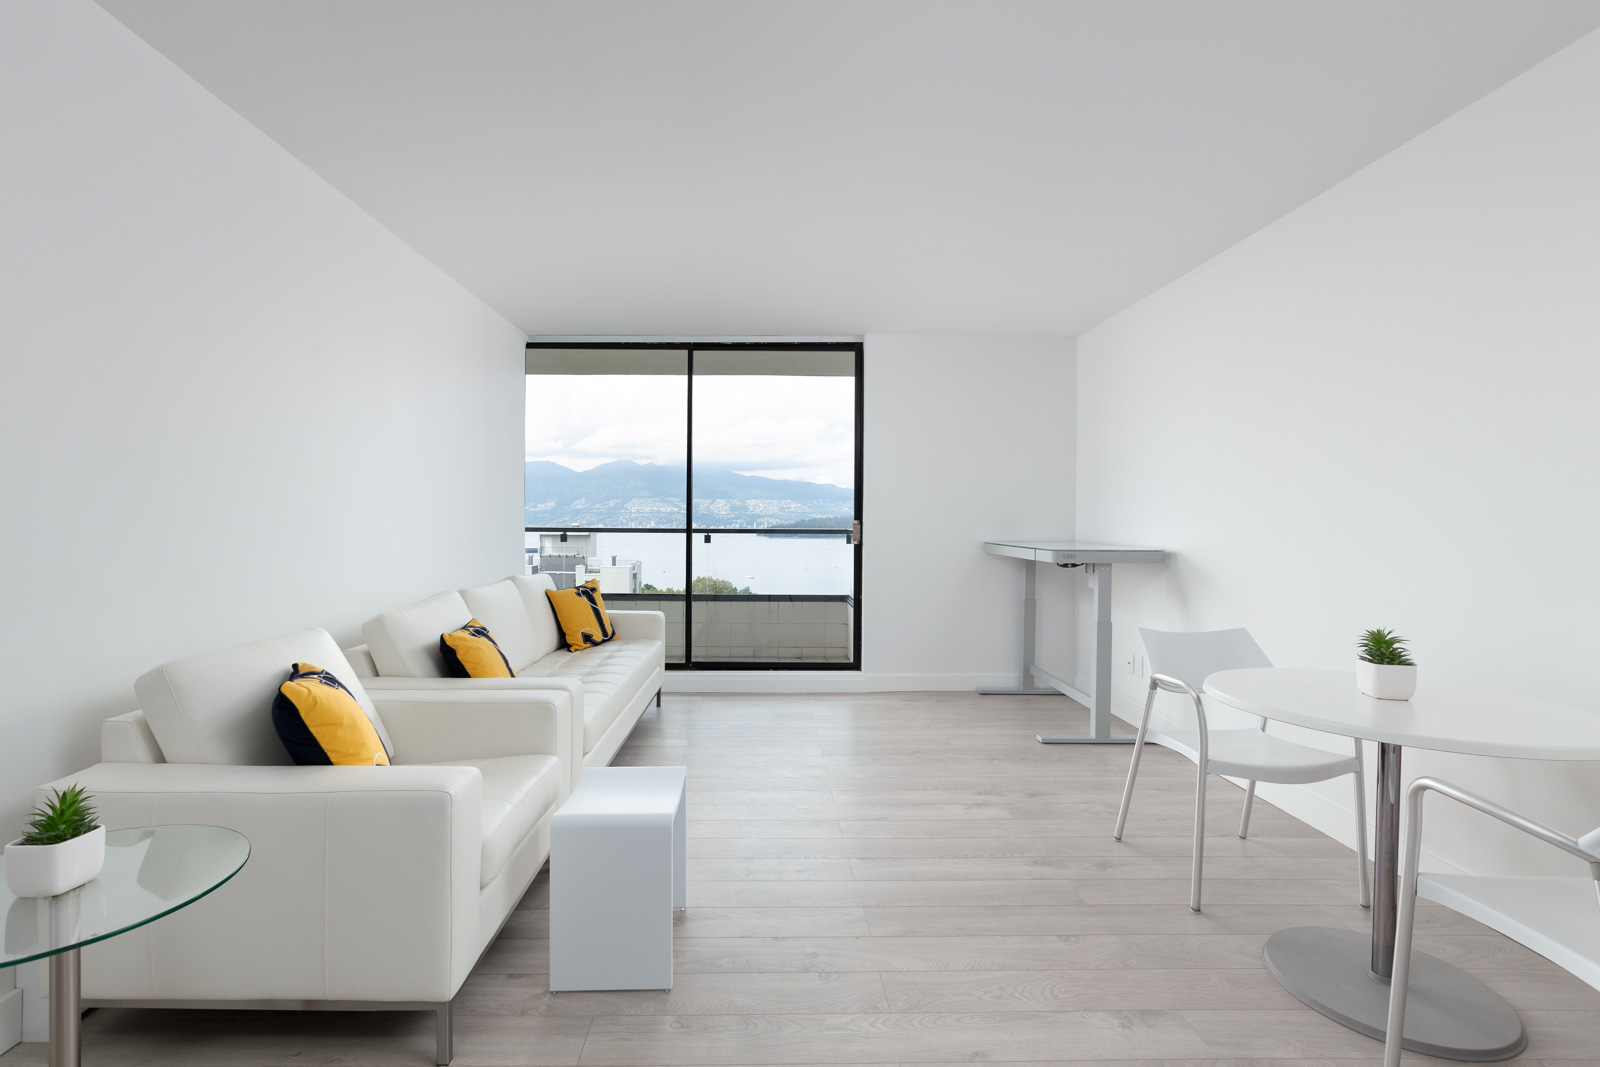 living room of rental property with sofa on left and window looking out over kitsilano beach of vancouver